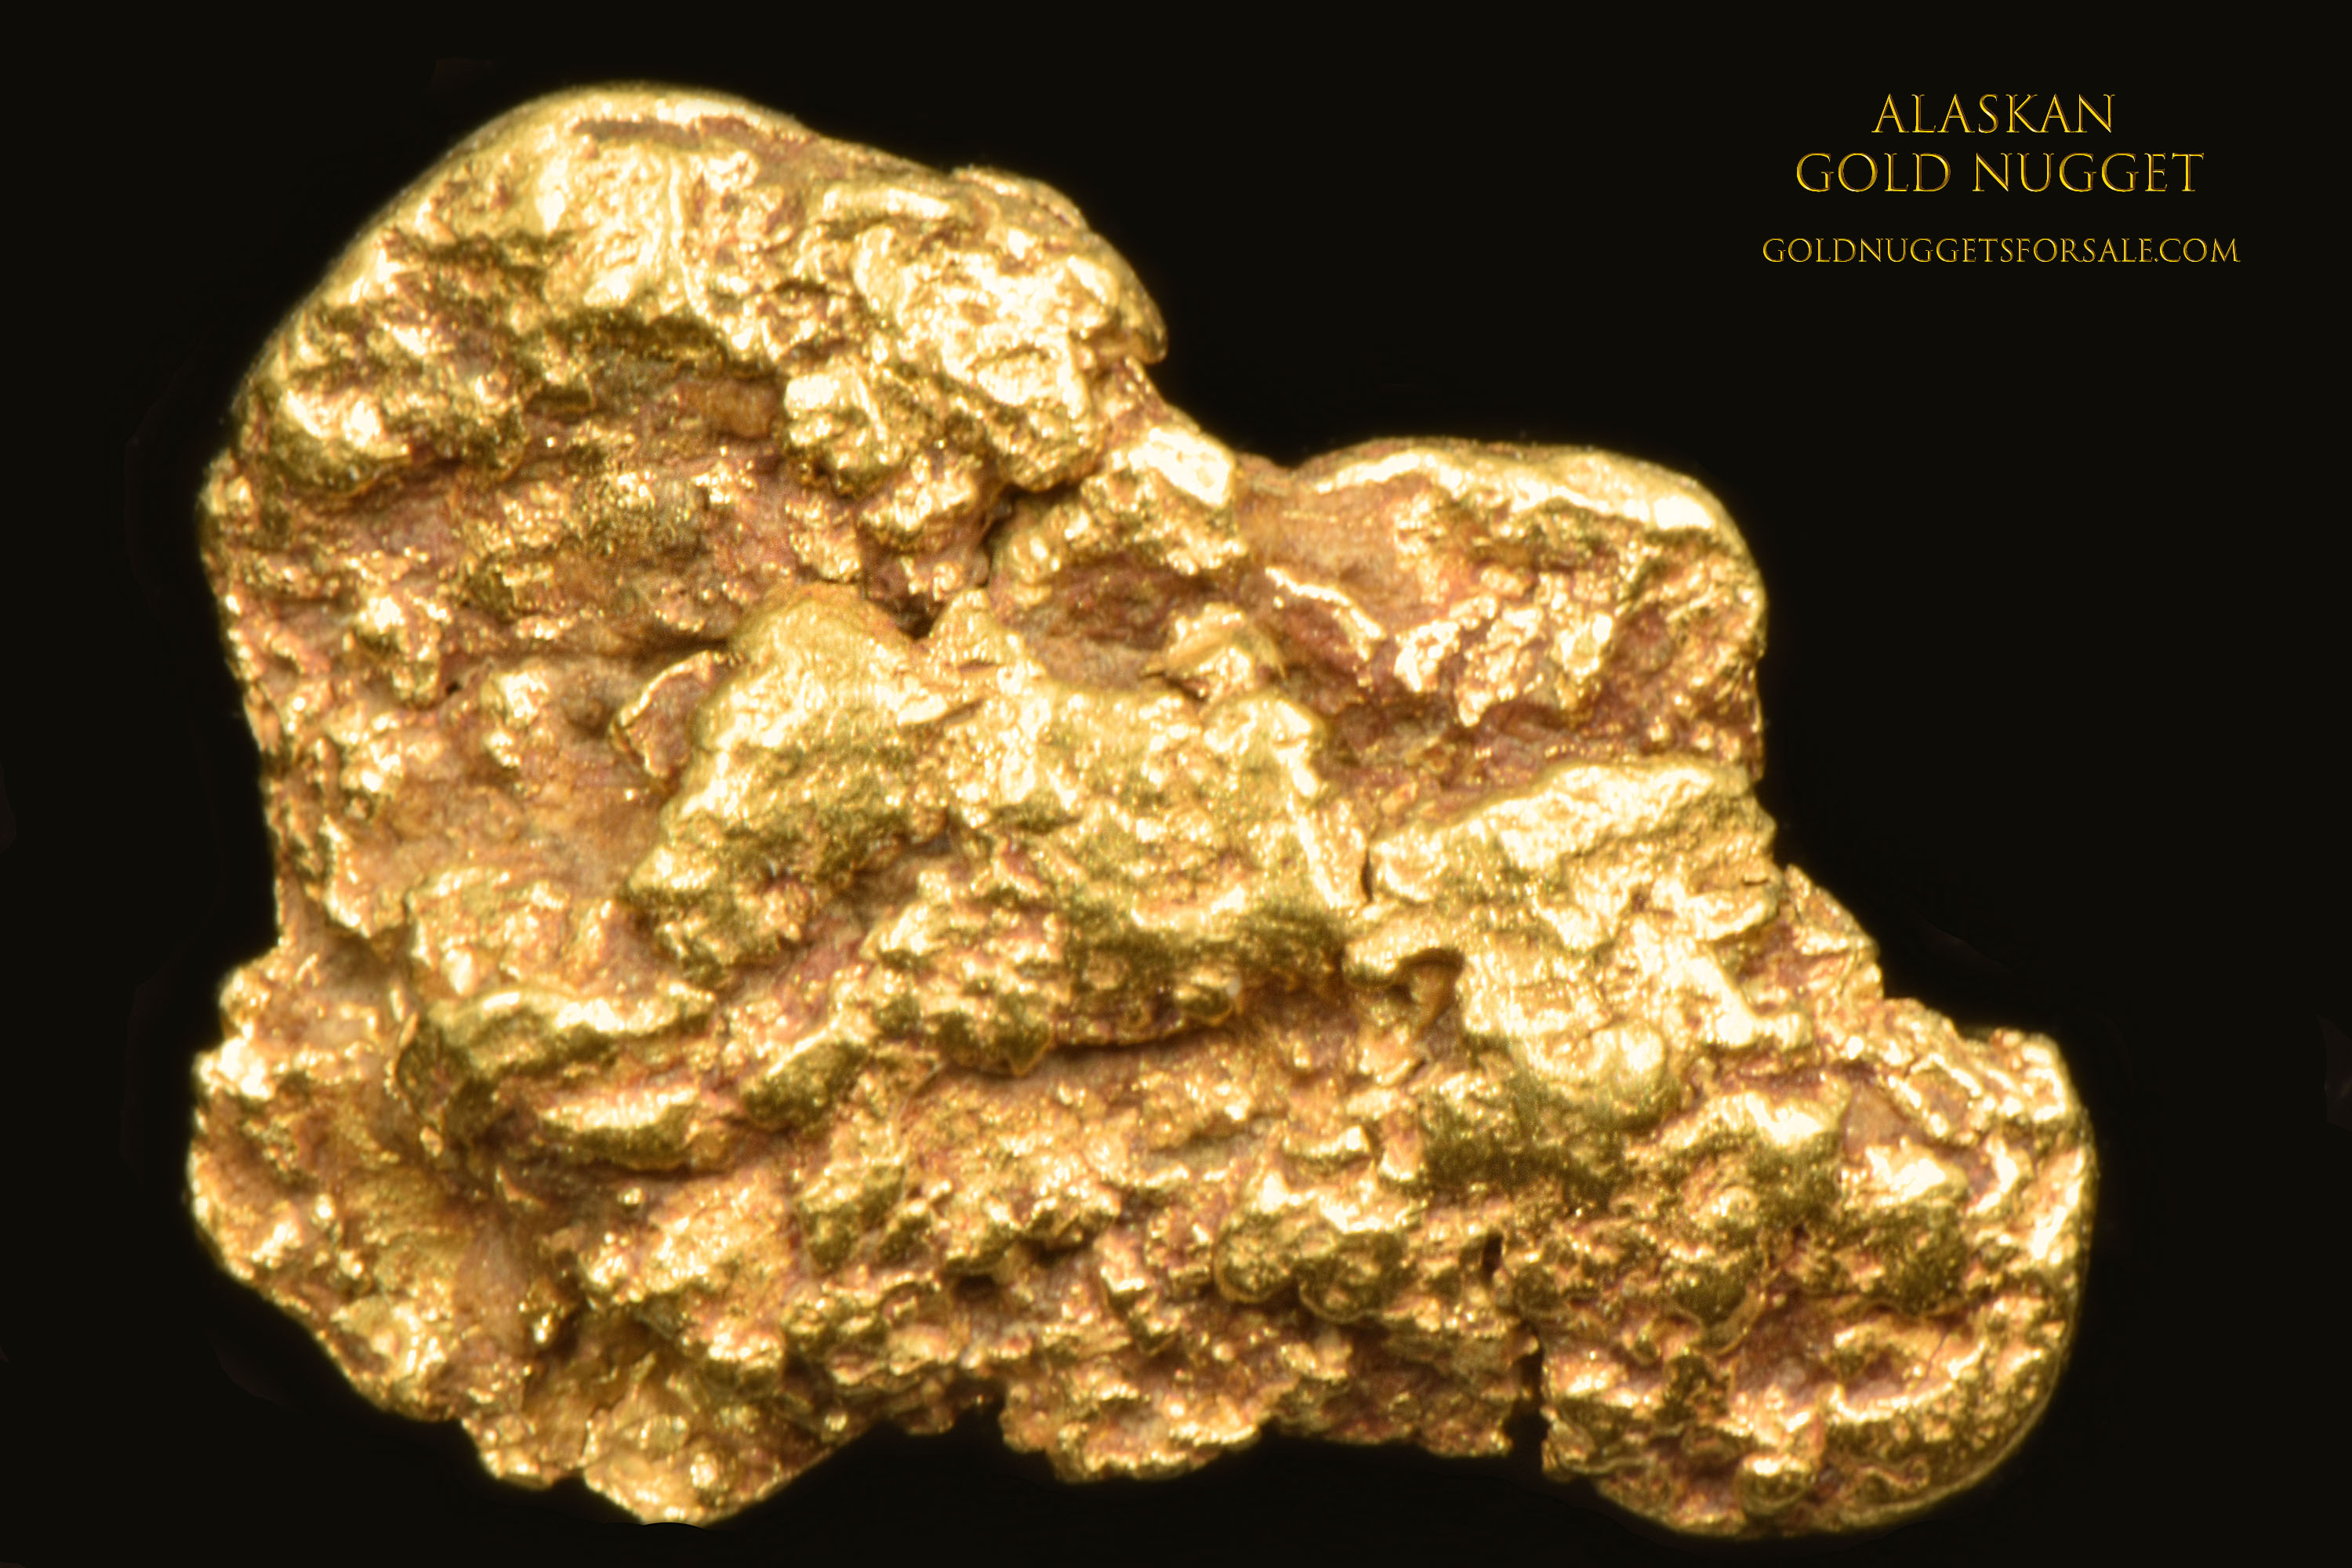 Jewelry Grade Alaskan Gold Nugget